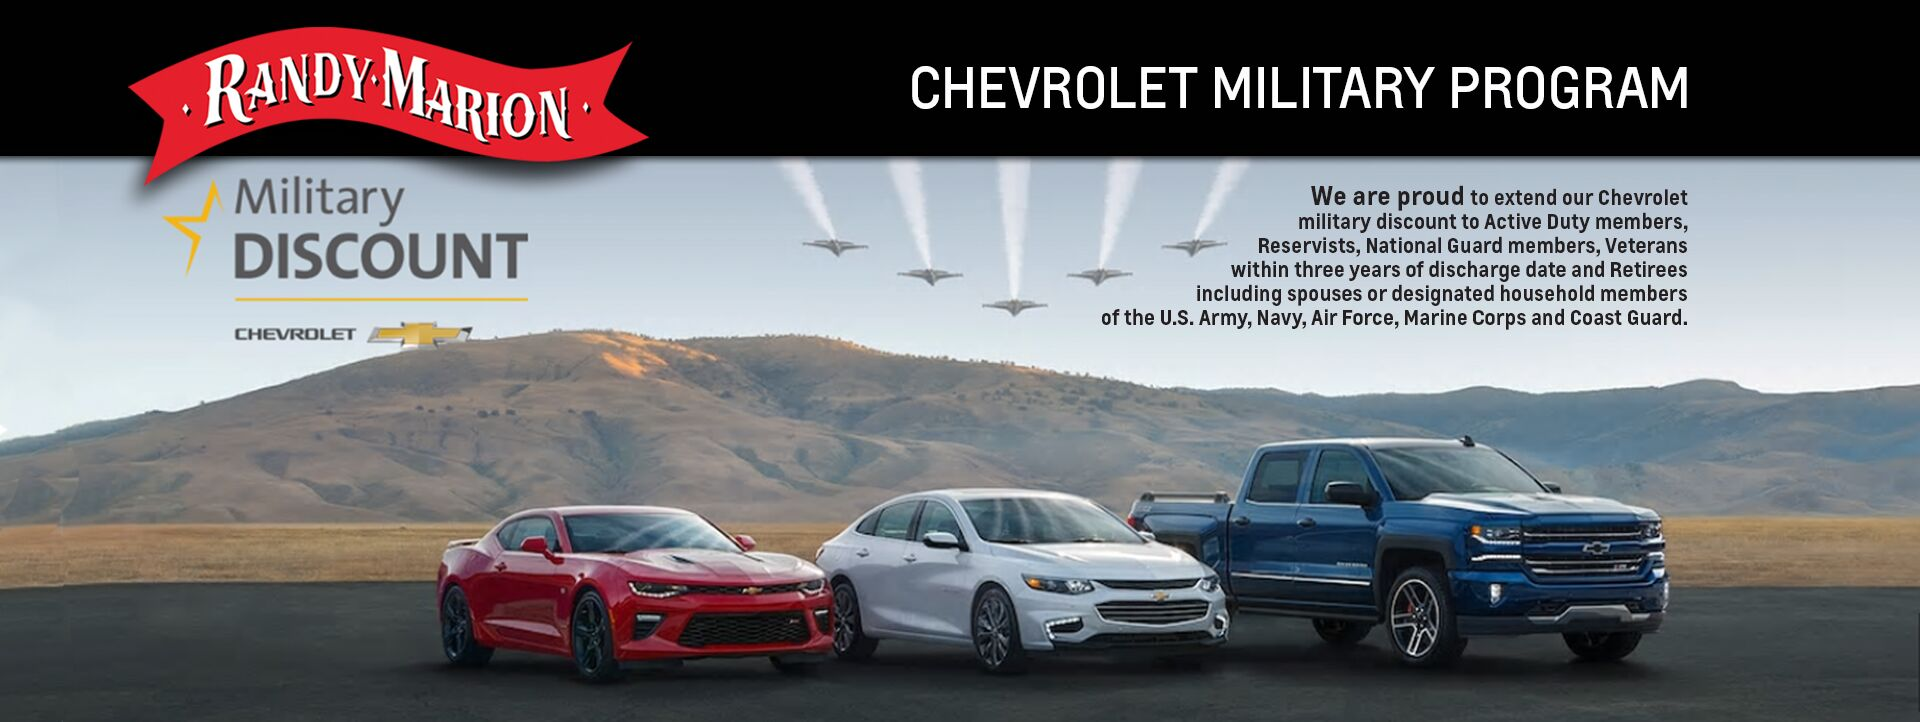 Auto Accessories Garage Military Discount Randy Marion Chevrolet Military Discount Program